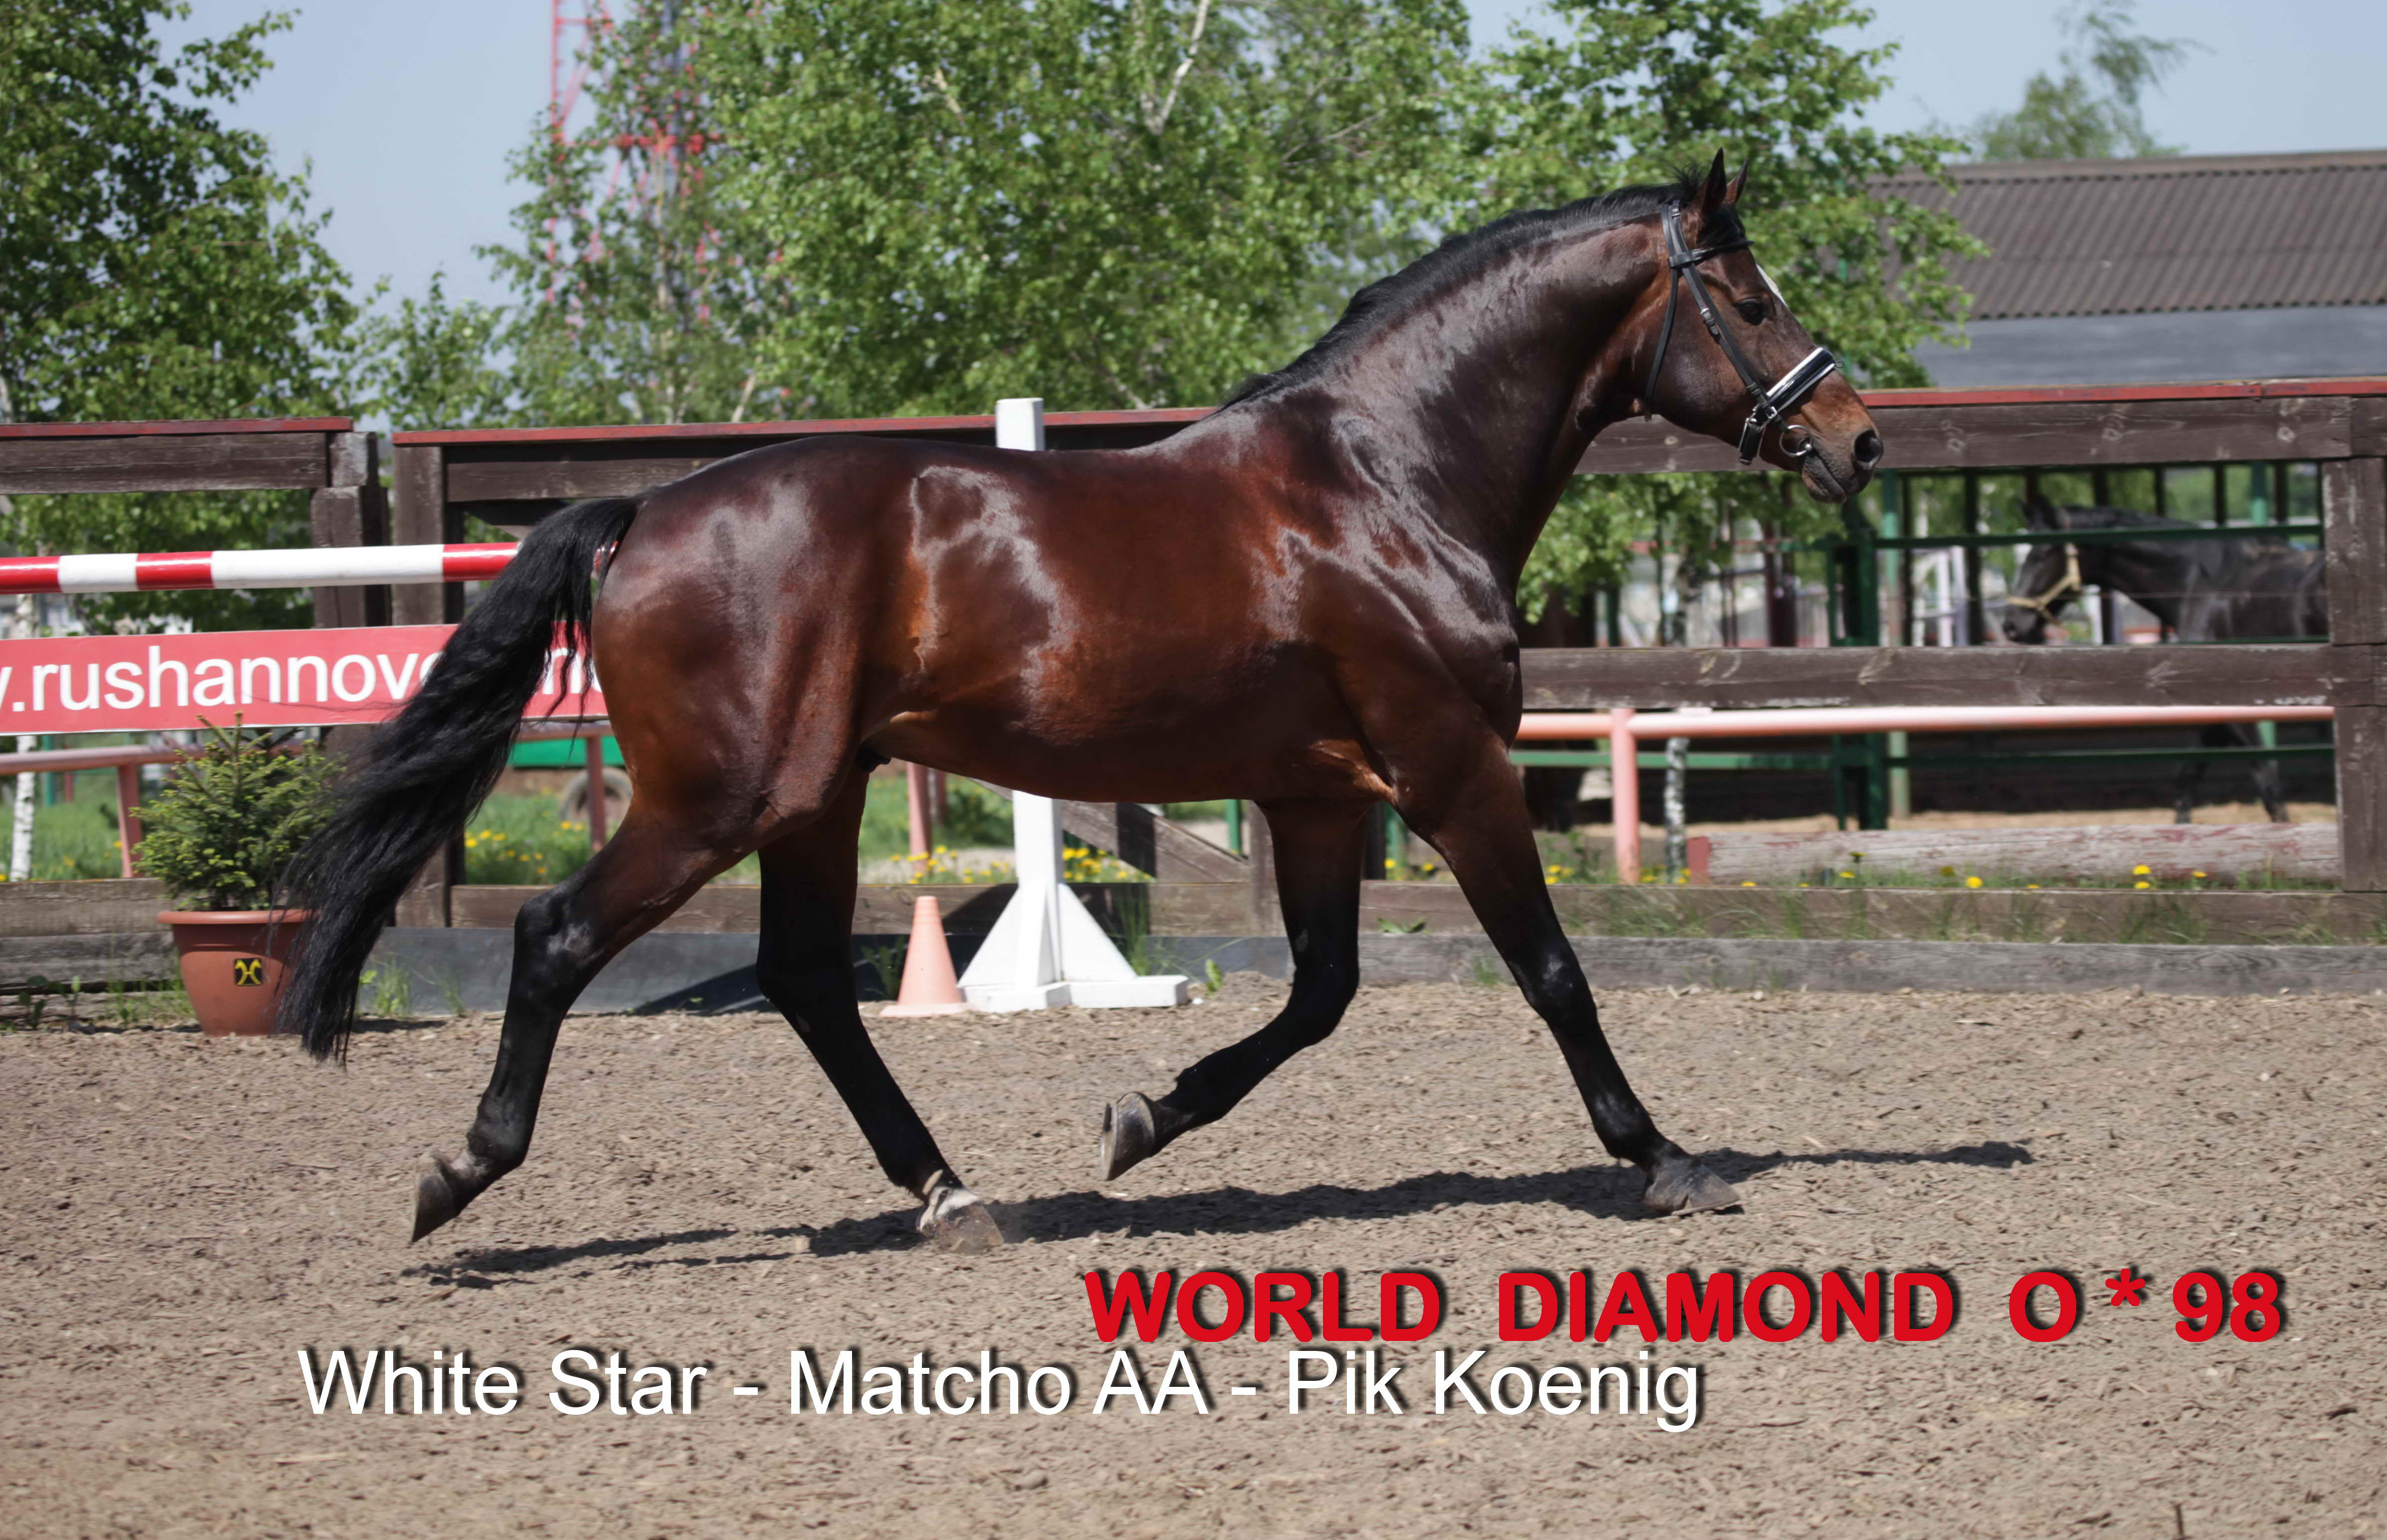 WORLD DIAMOND O - 1998 (White Star/ Matcho AA /Pik Koenig)